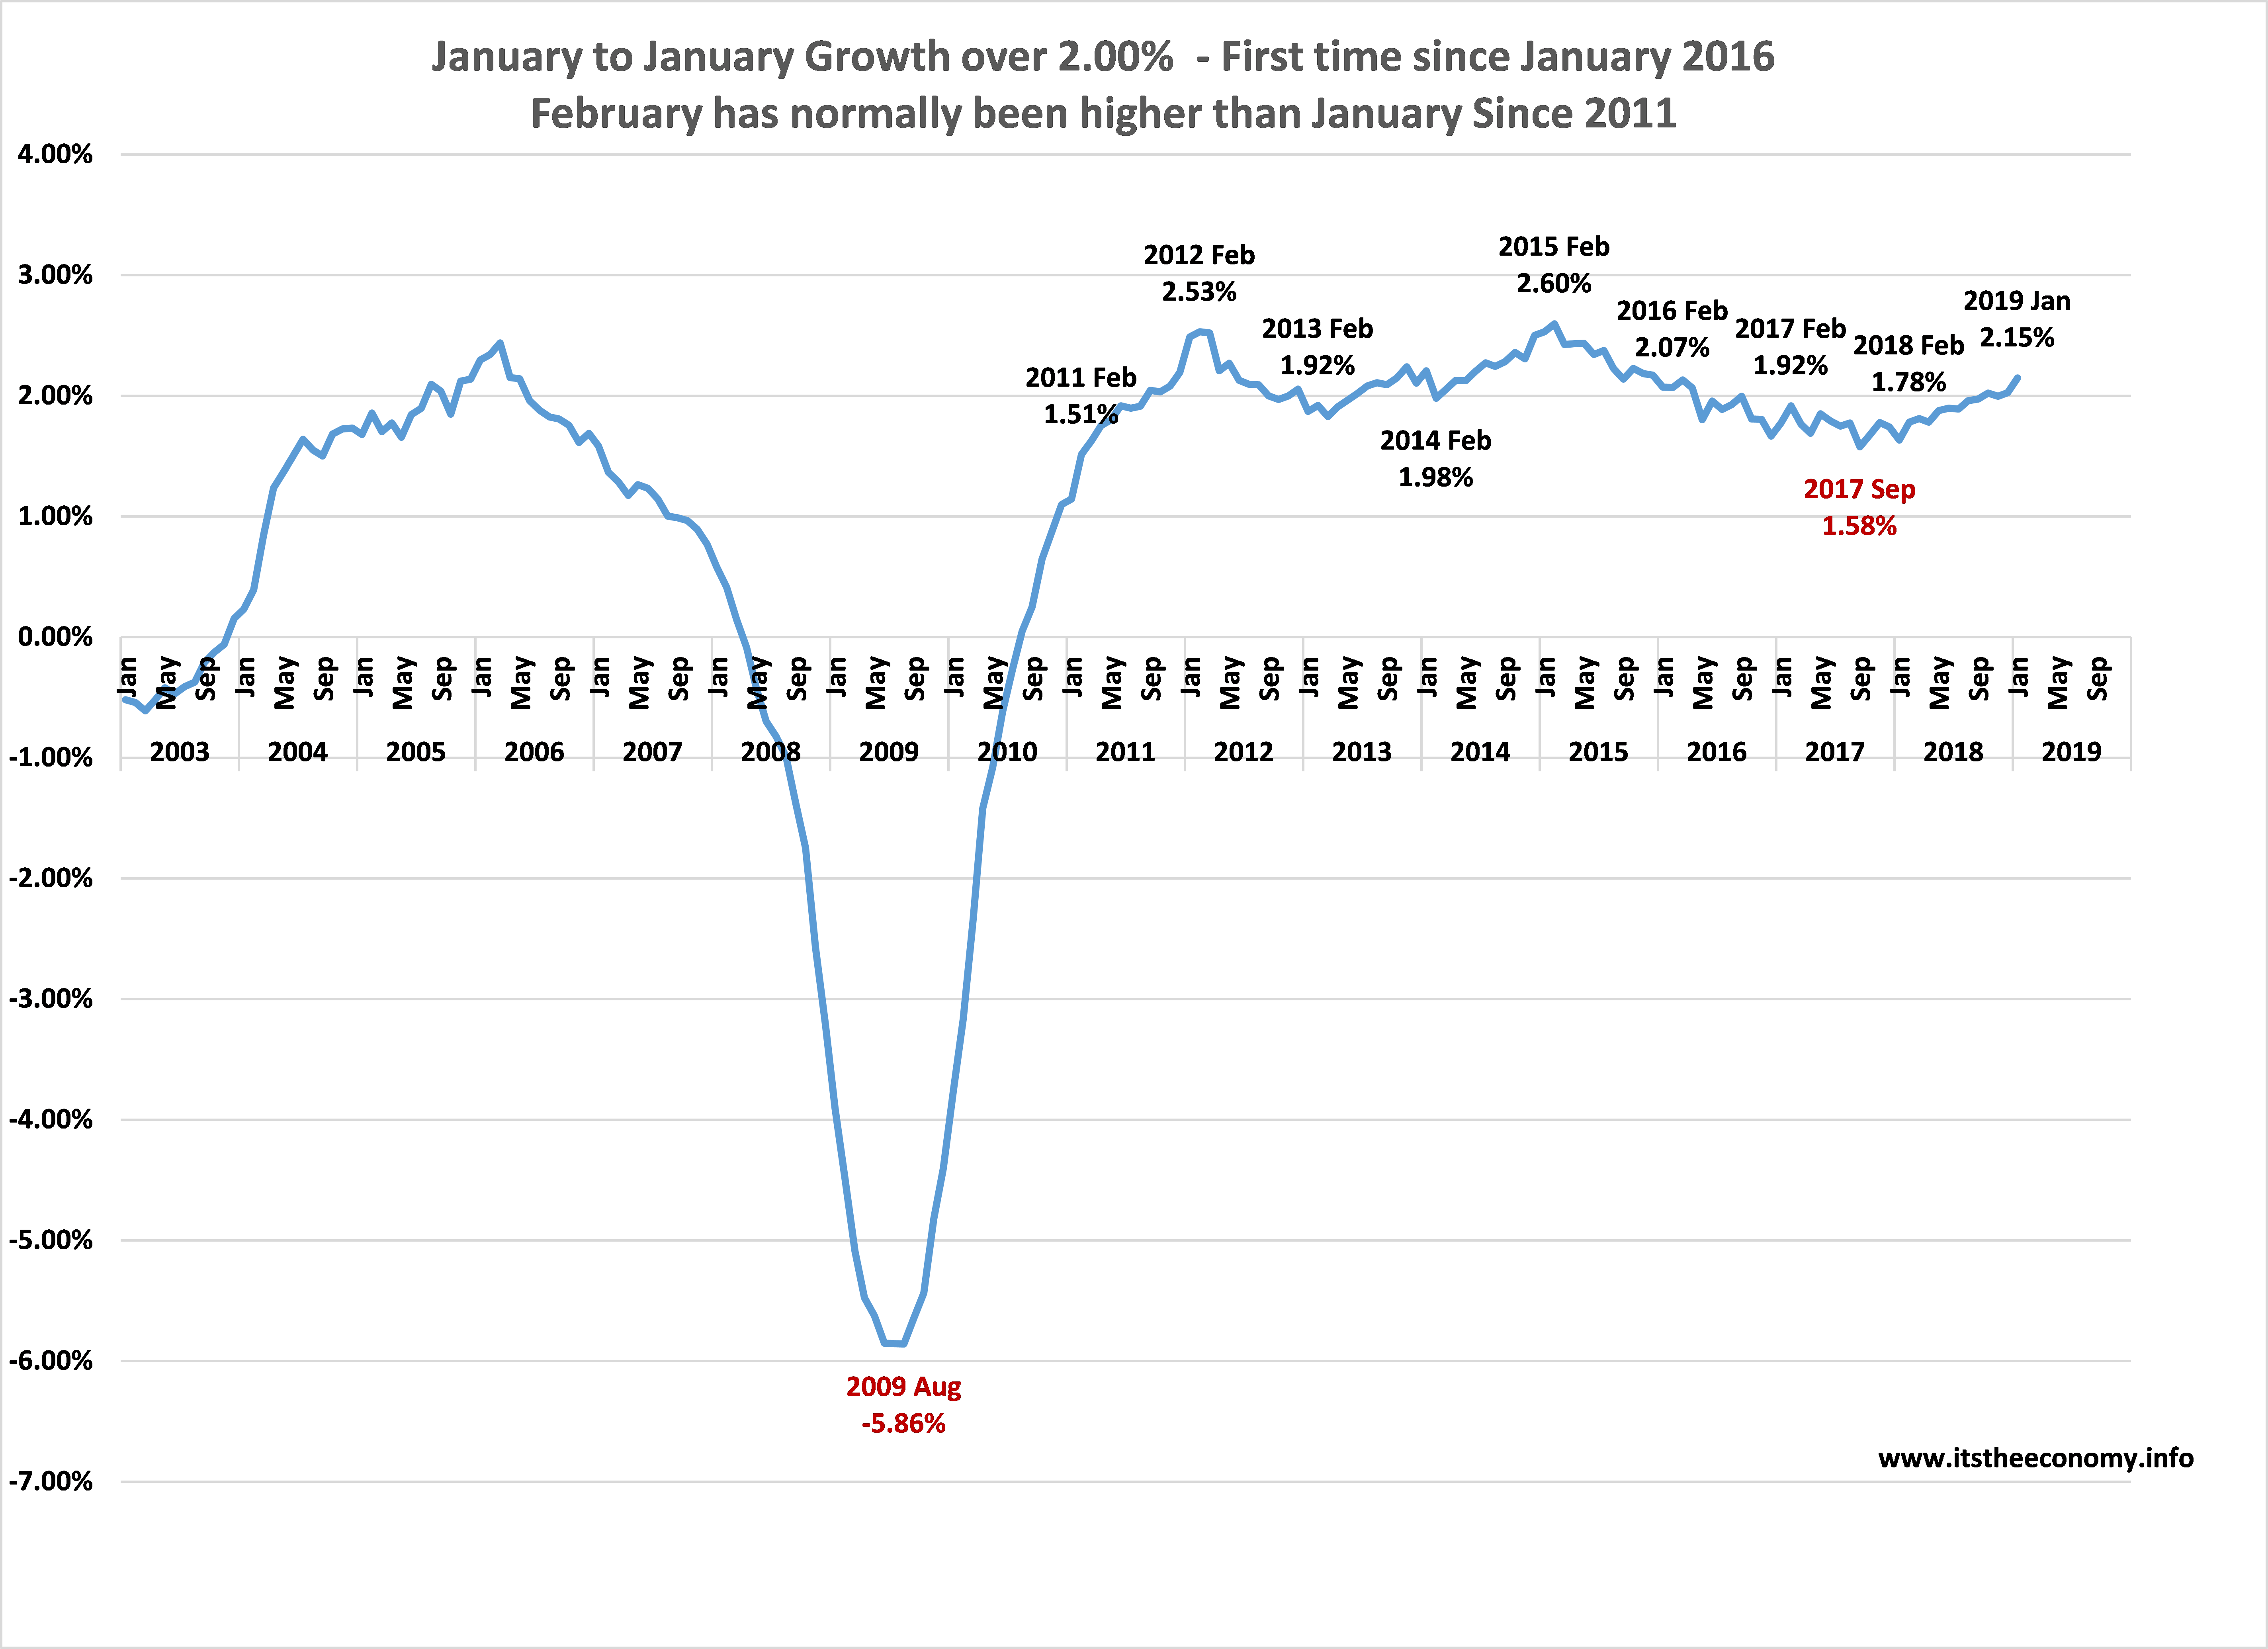 We were growing at 2.15% annually this January. This was better than , and February 2011, 2013, 2014, 2016, 2017, and 2018. February tends to grow at a faster rate than the prior January. Could we hit 2.20%?